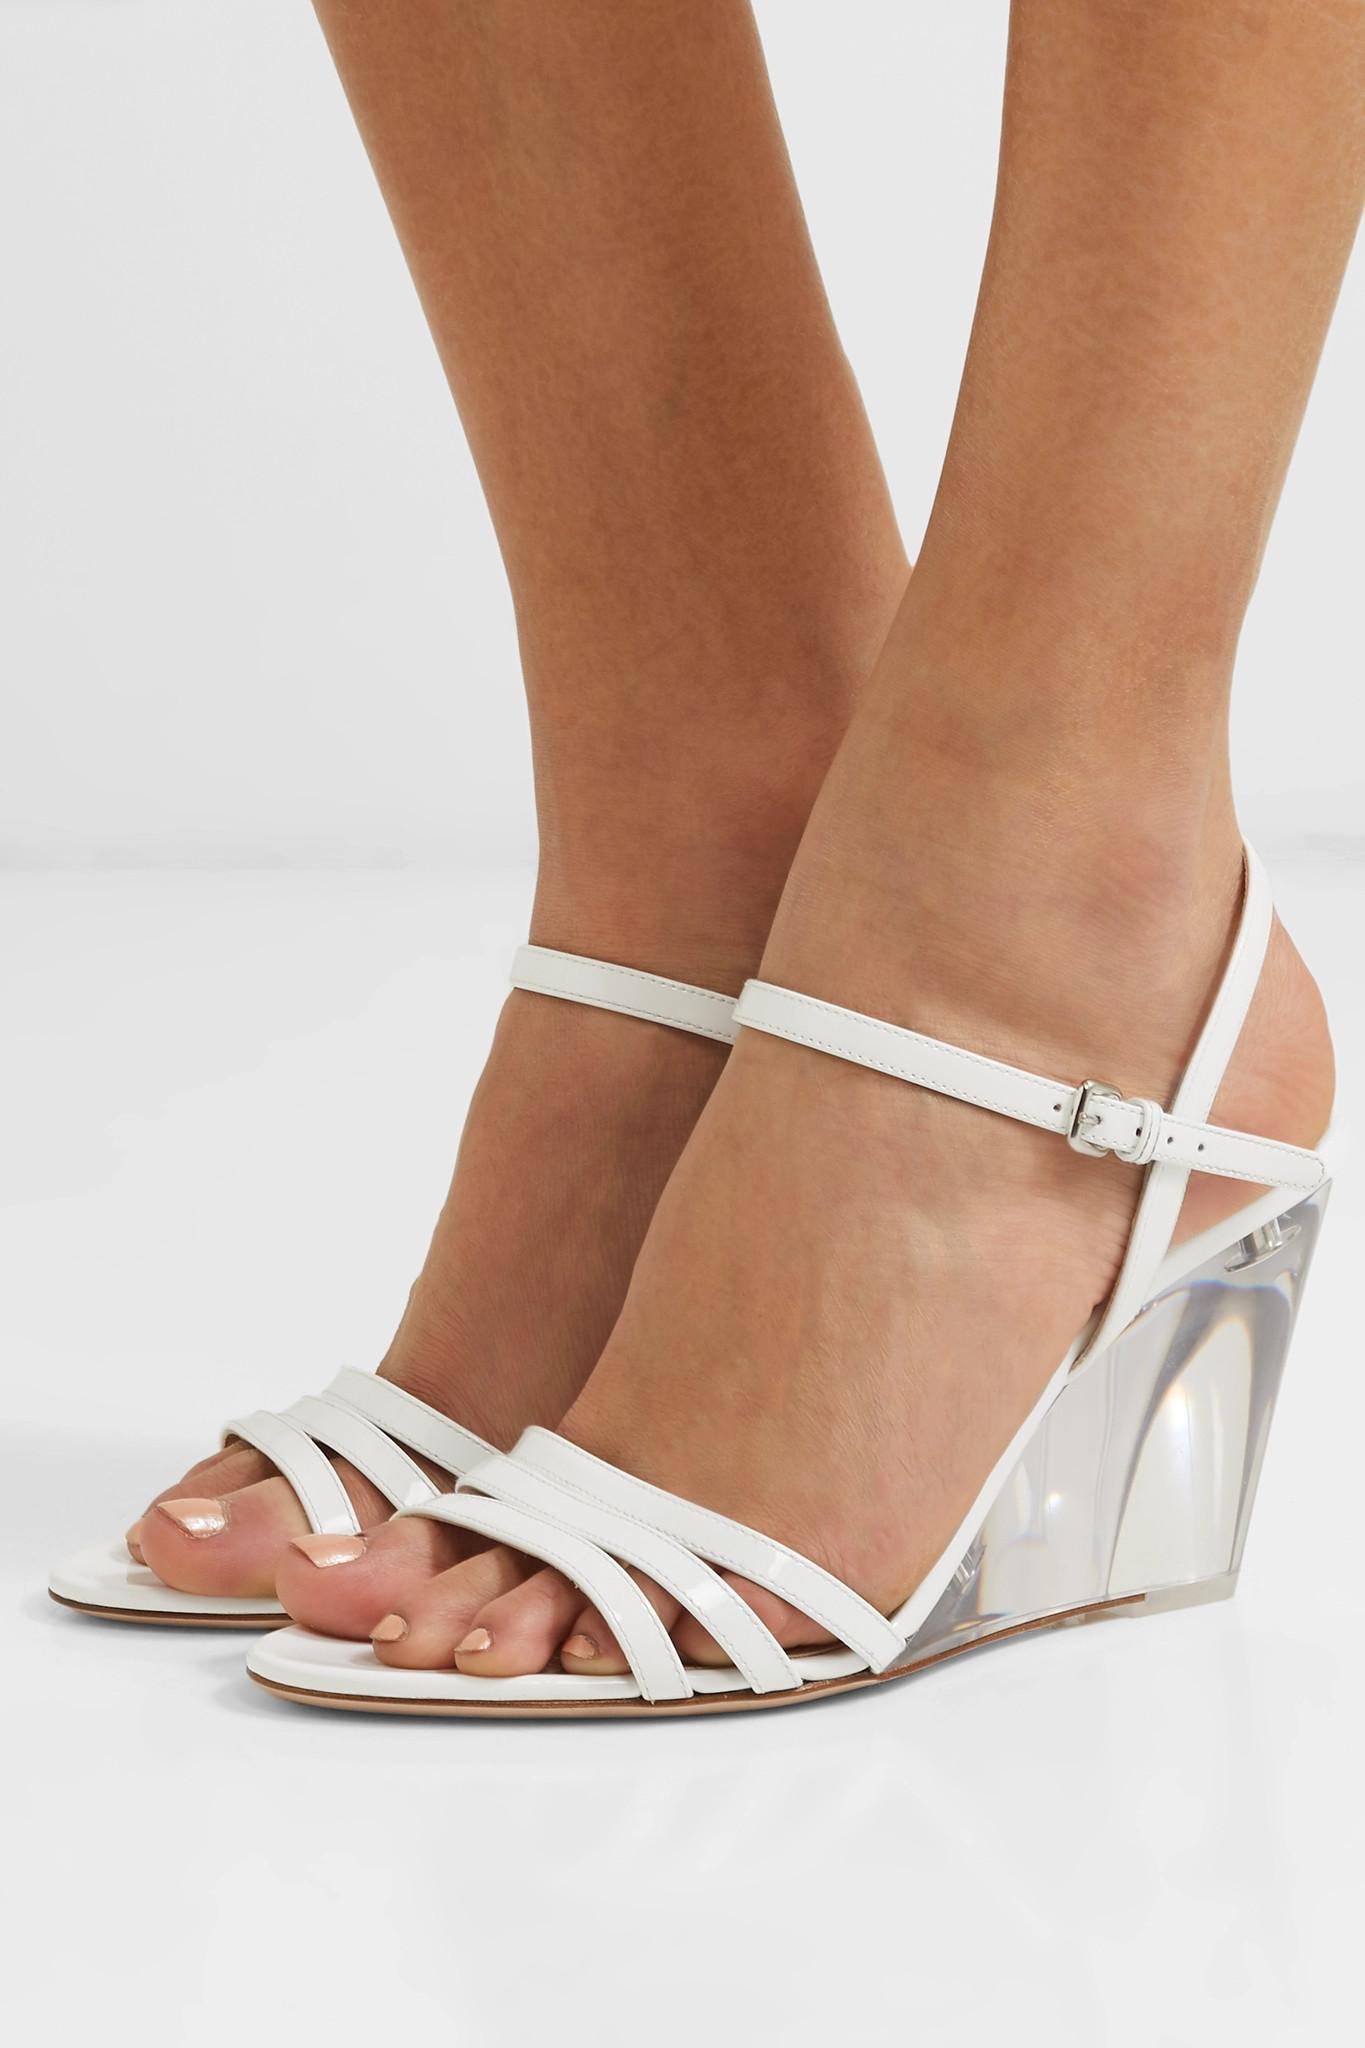 Lyst - Miu Miu Perspex And Leather Wedge Sandals in White